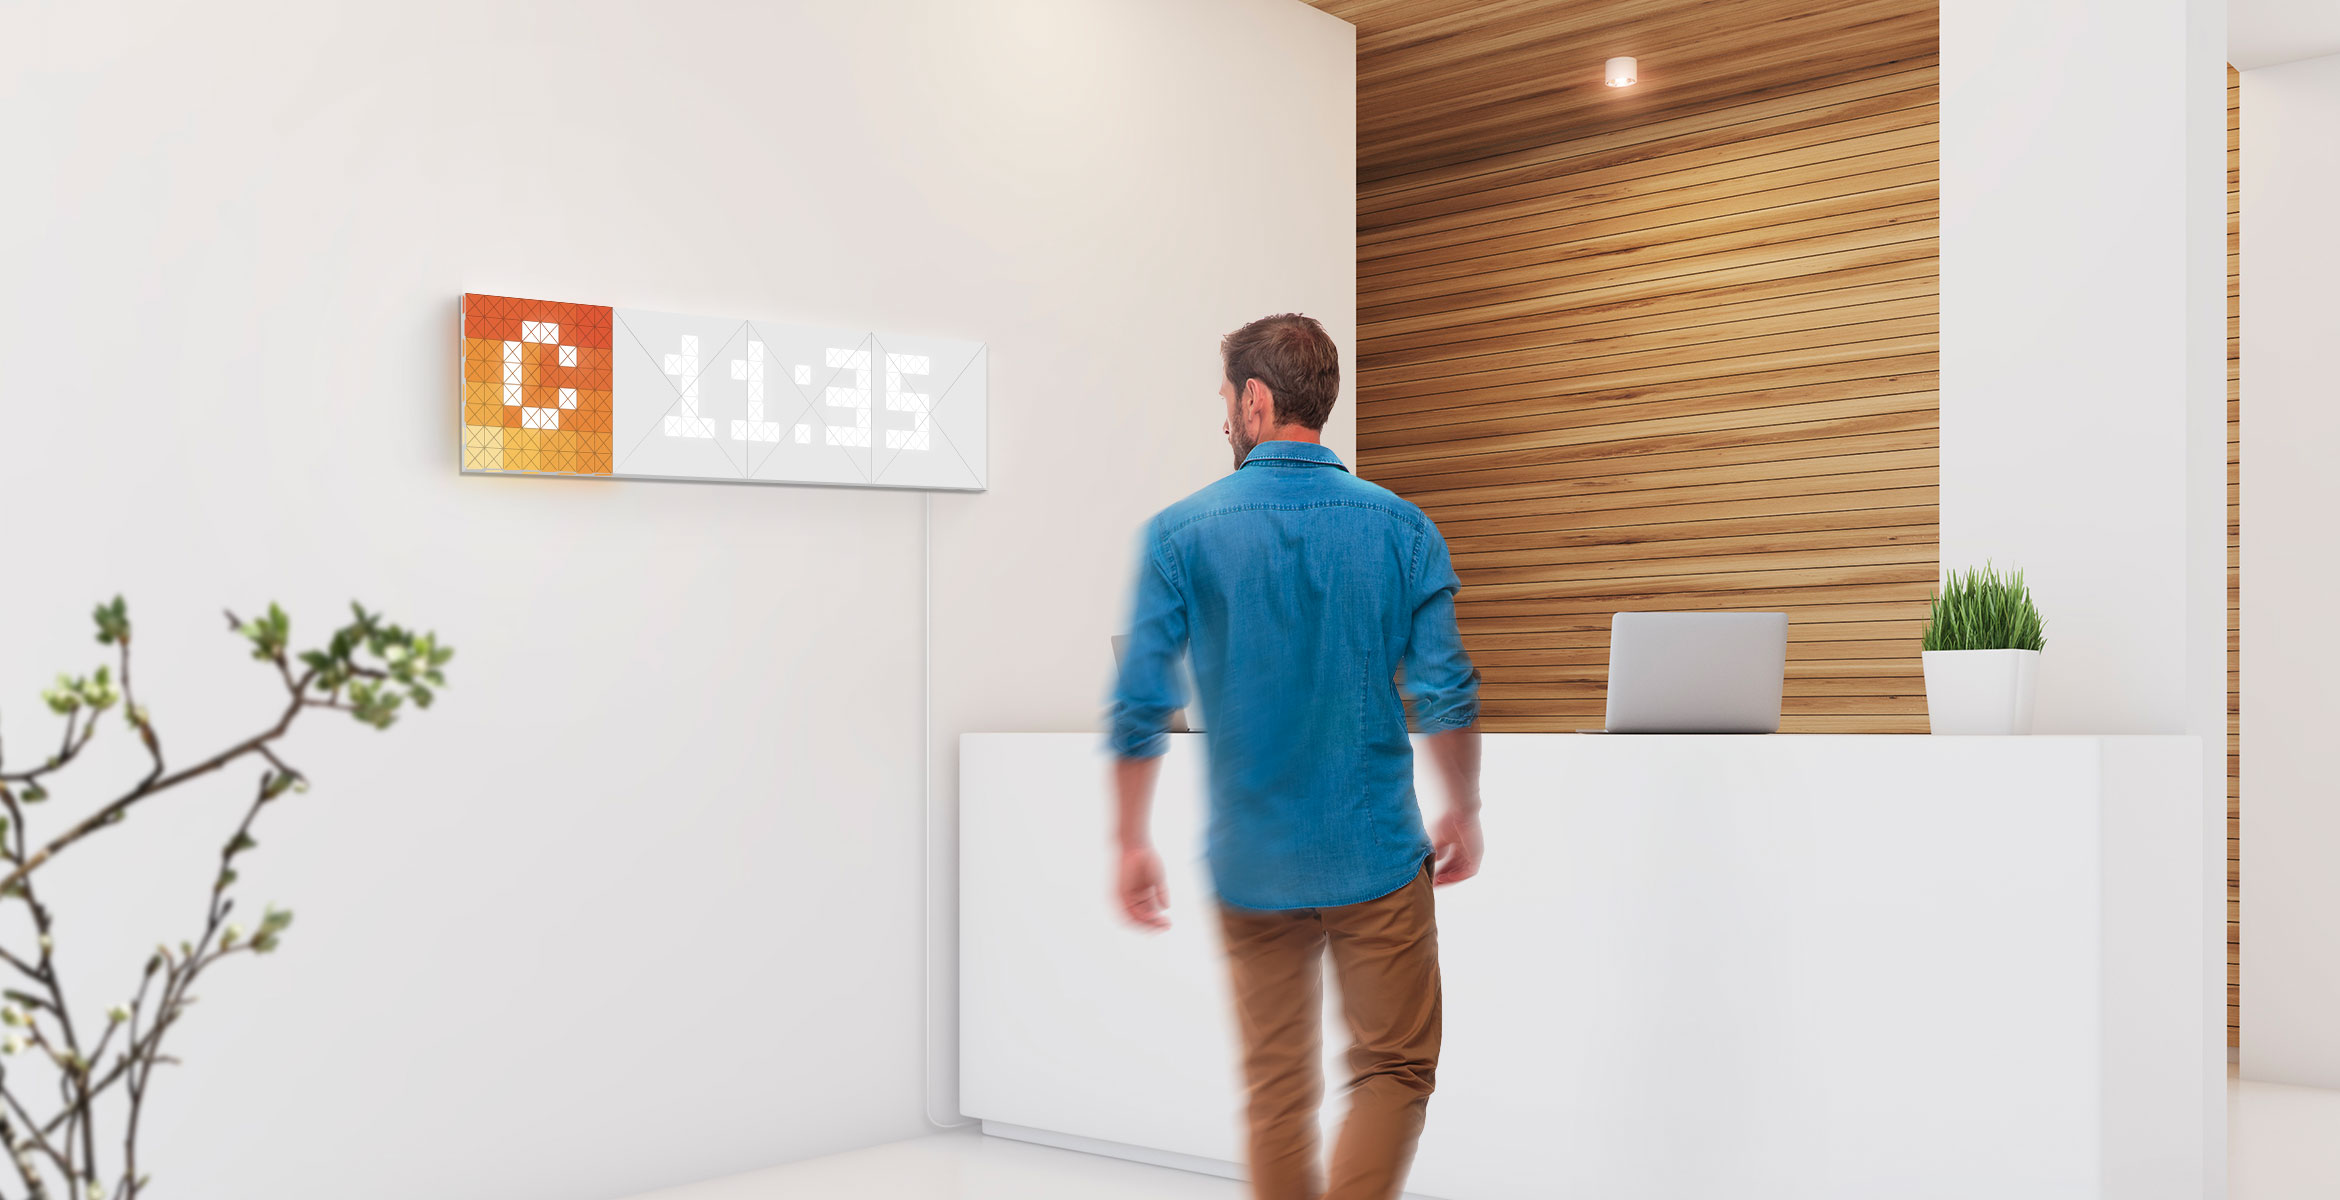 Infoscreen, assembled from 16 smart light surfaces, complements the office interior and displays time and company logo